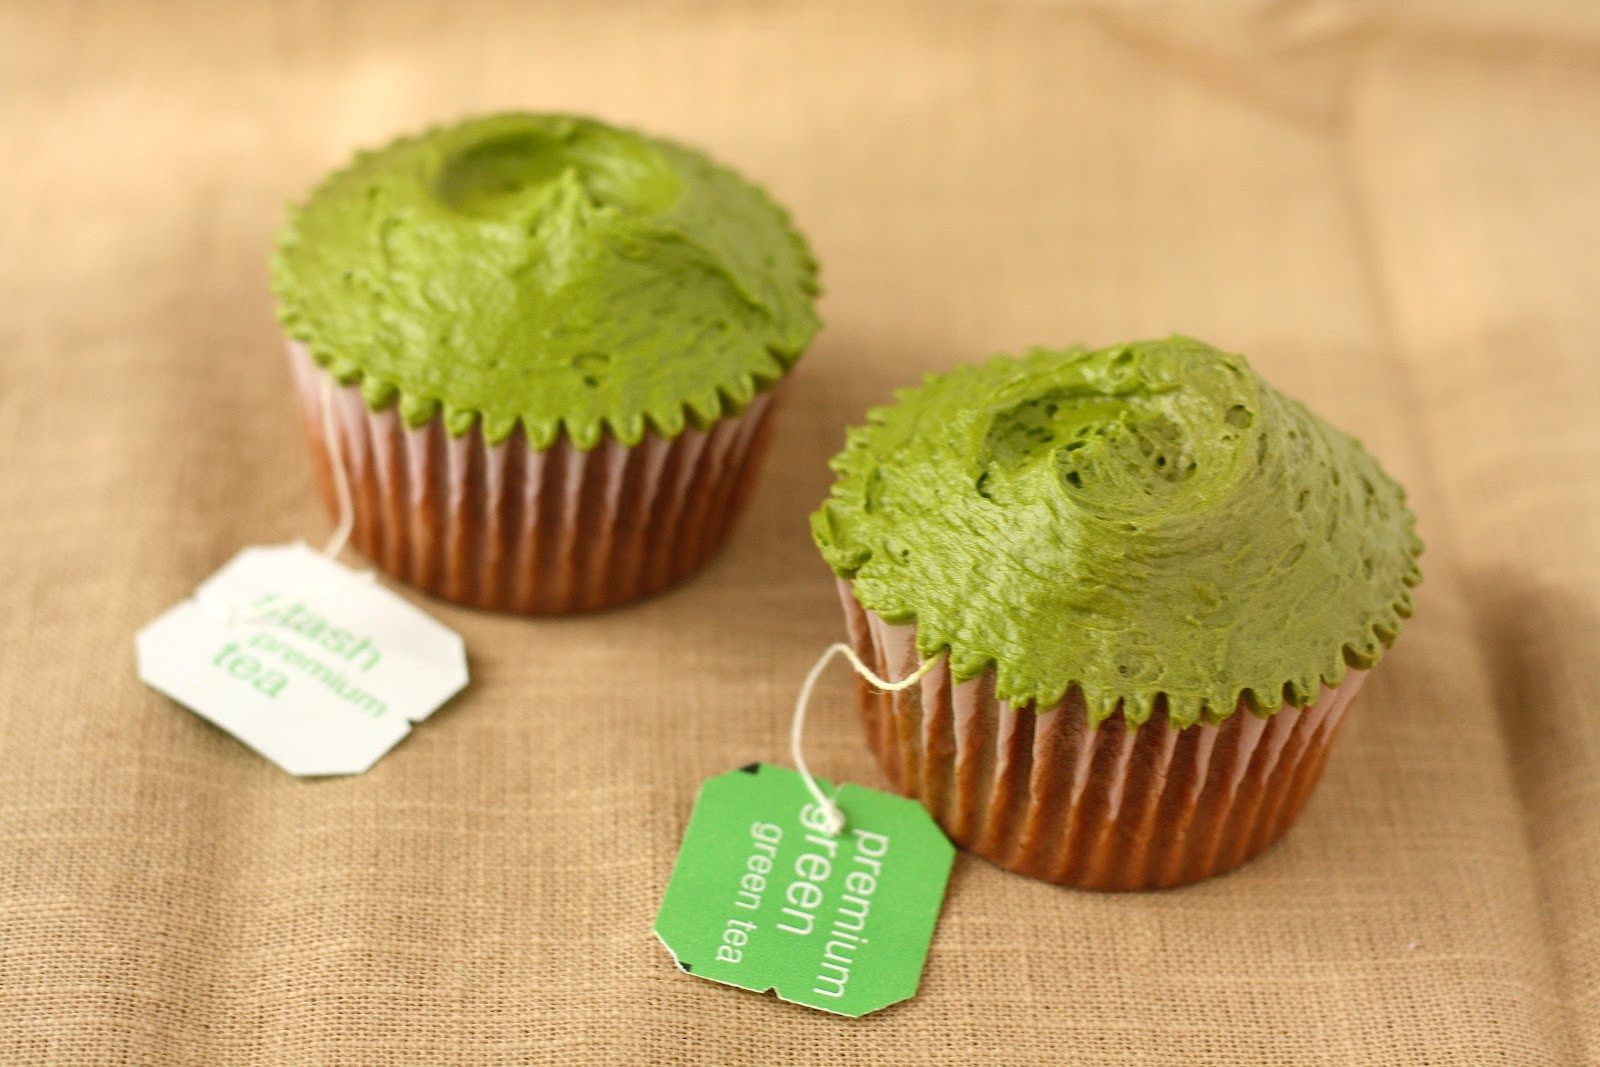 Green Tea Cupcakes  Hummingbird Bakery Green Tea Cupcakes Recipe Adapted for